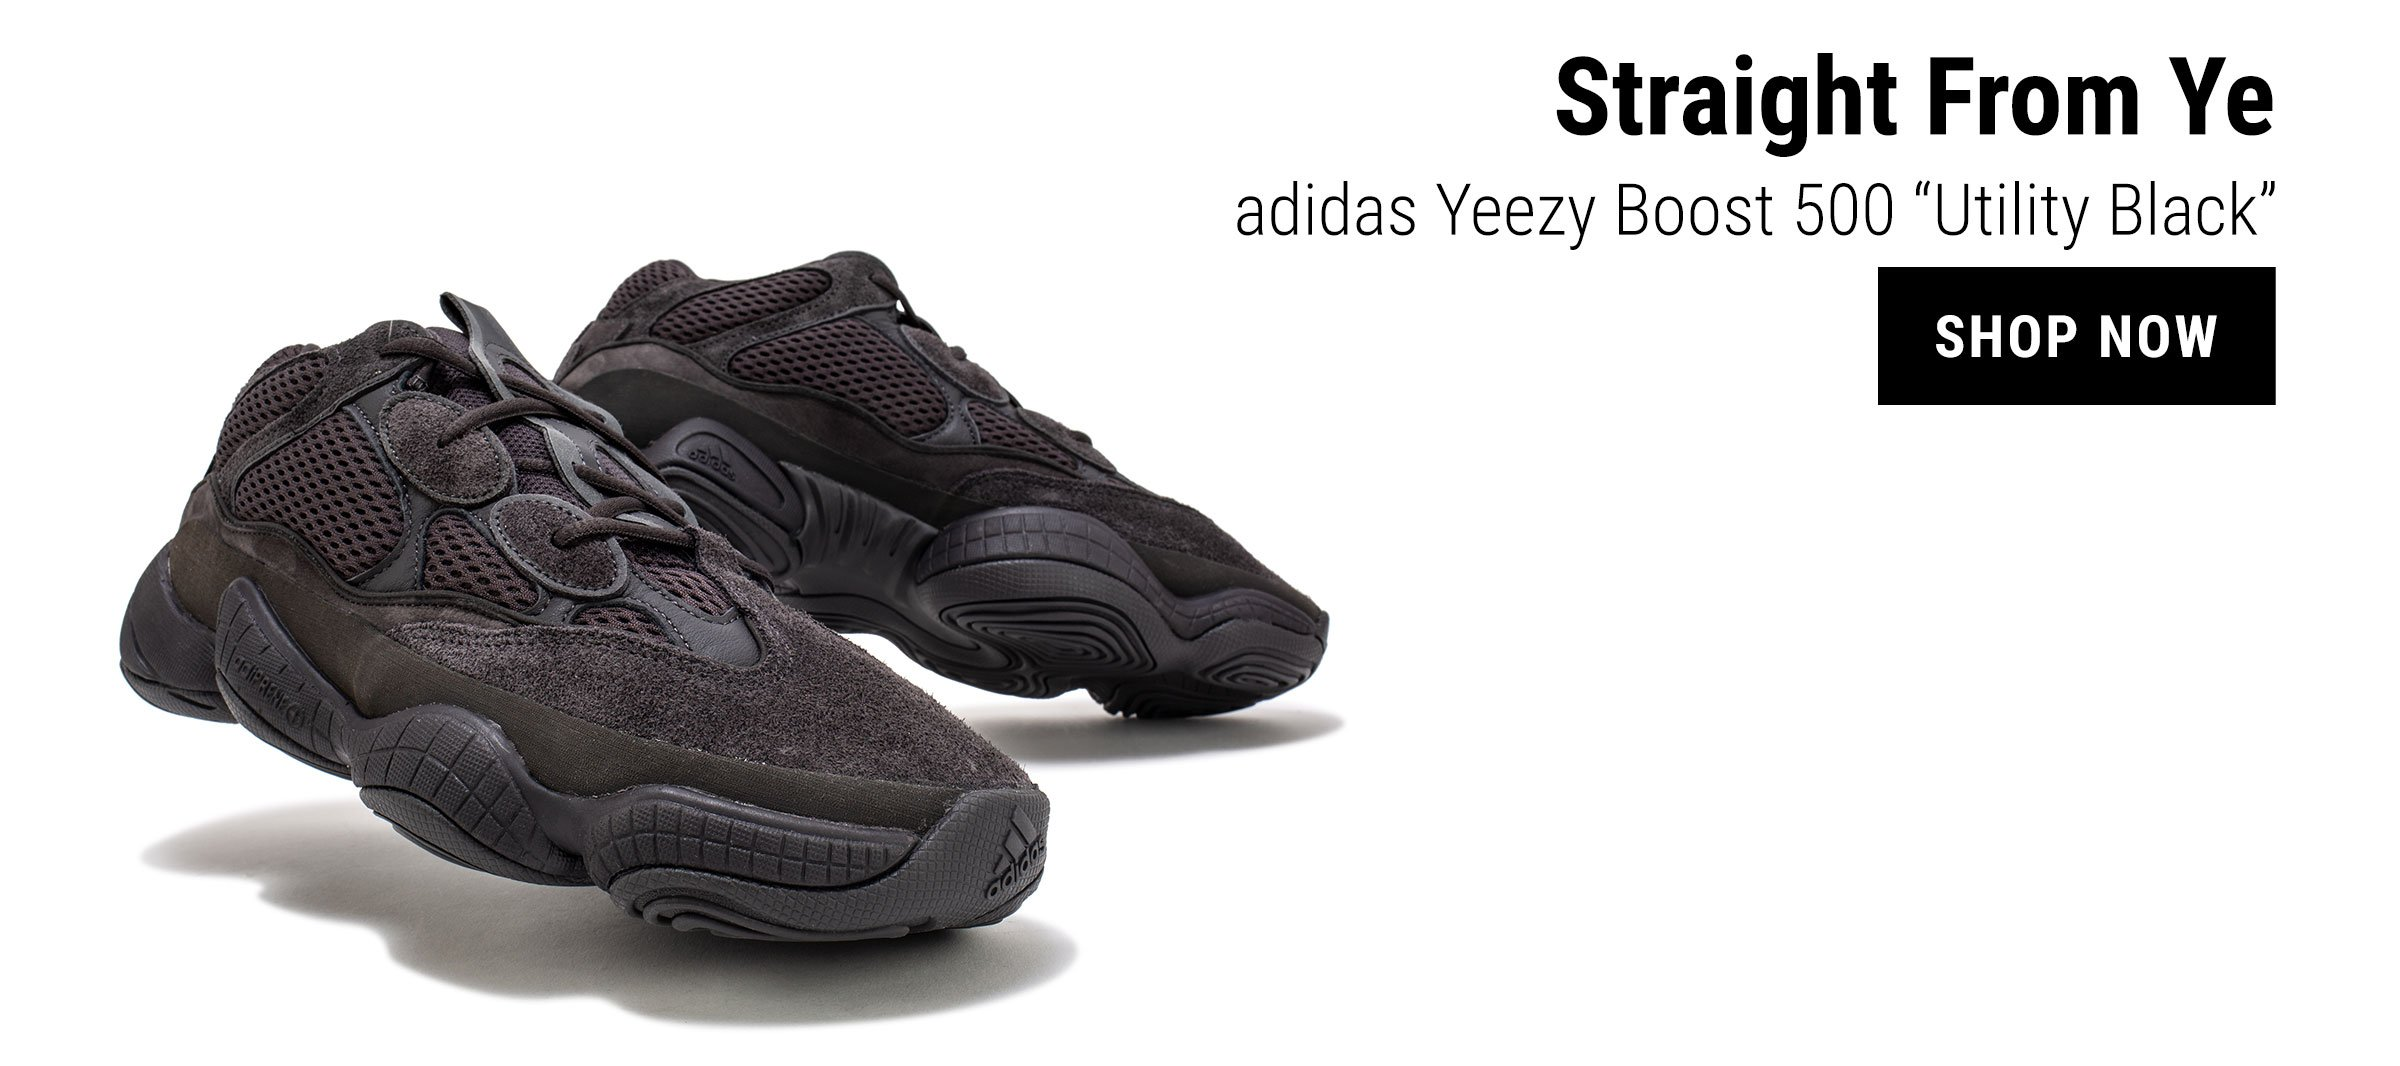 56f102978f124 Straight From Ye  the latest from adidas x Yeezy feat. the Yeezy ...